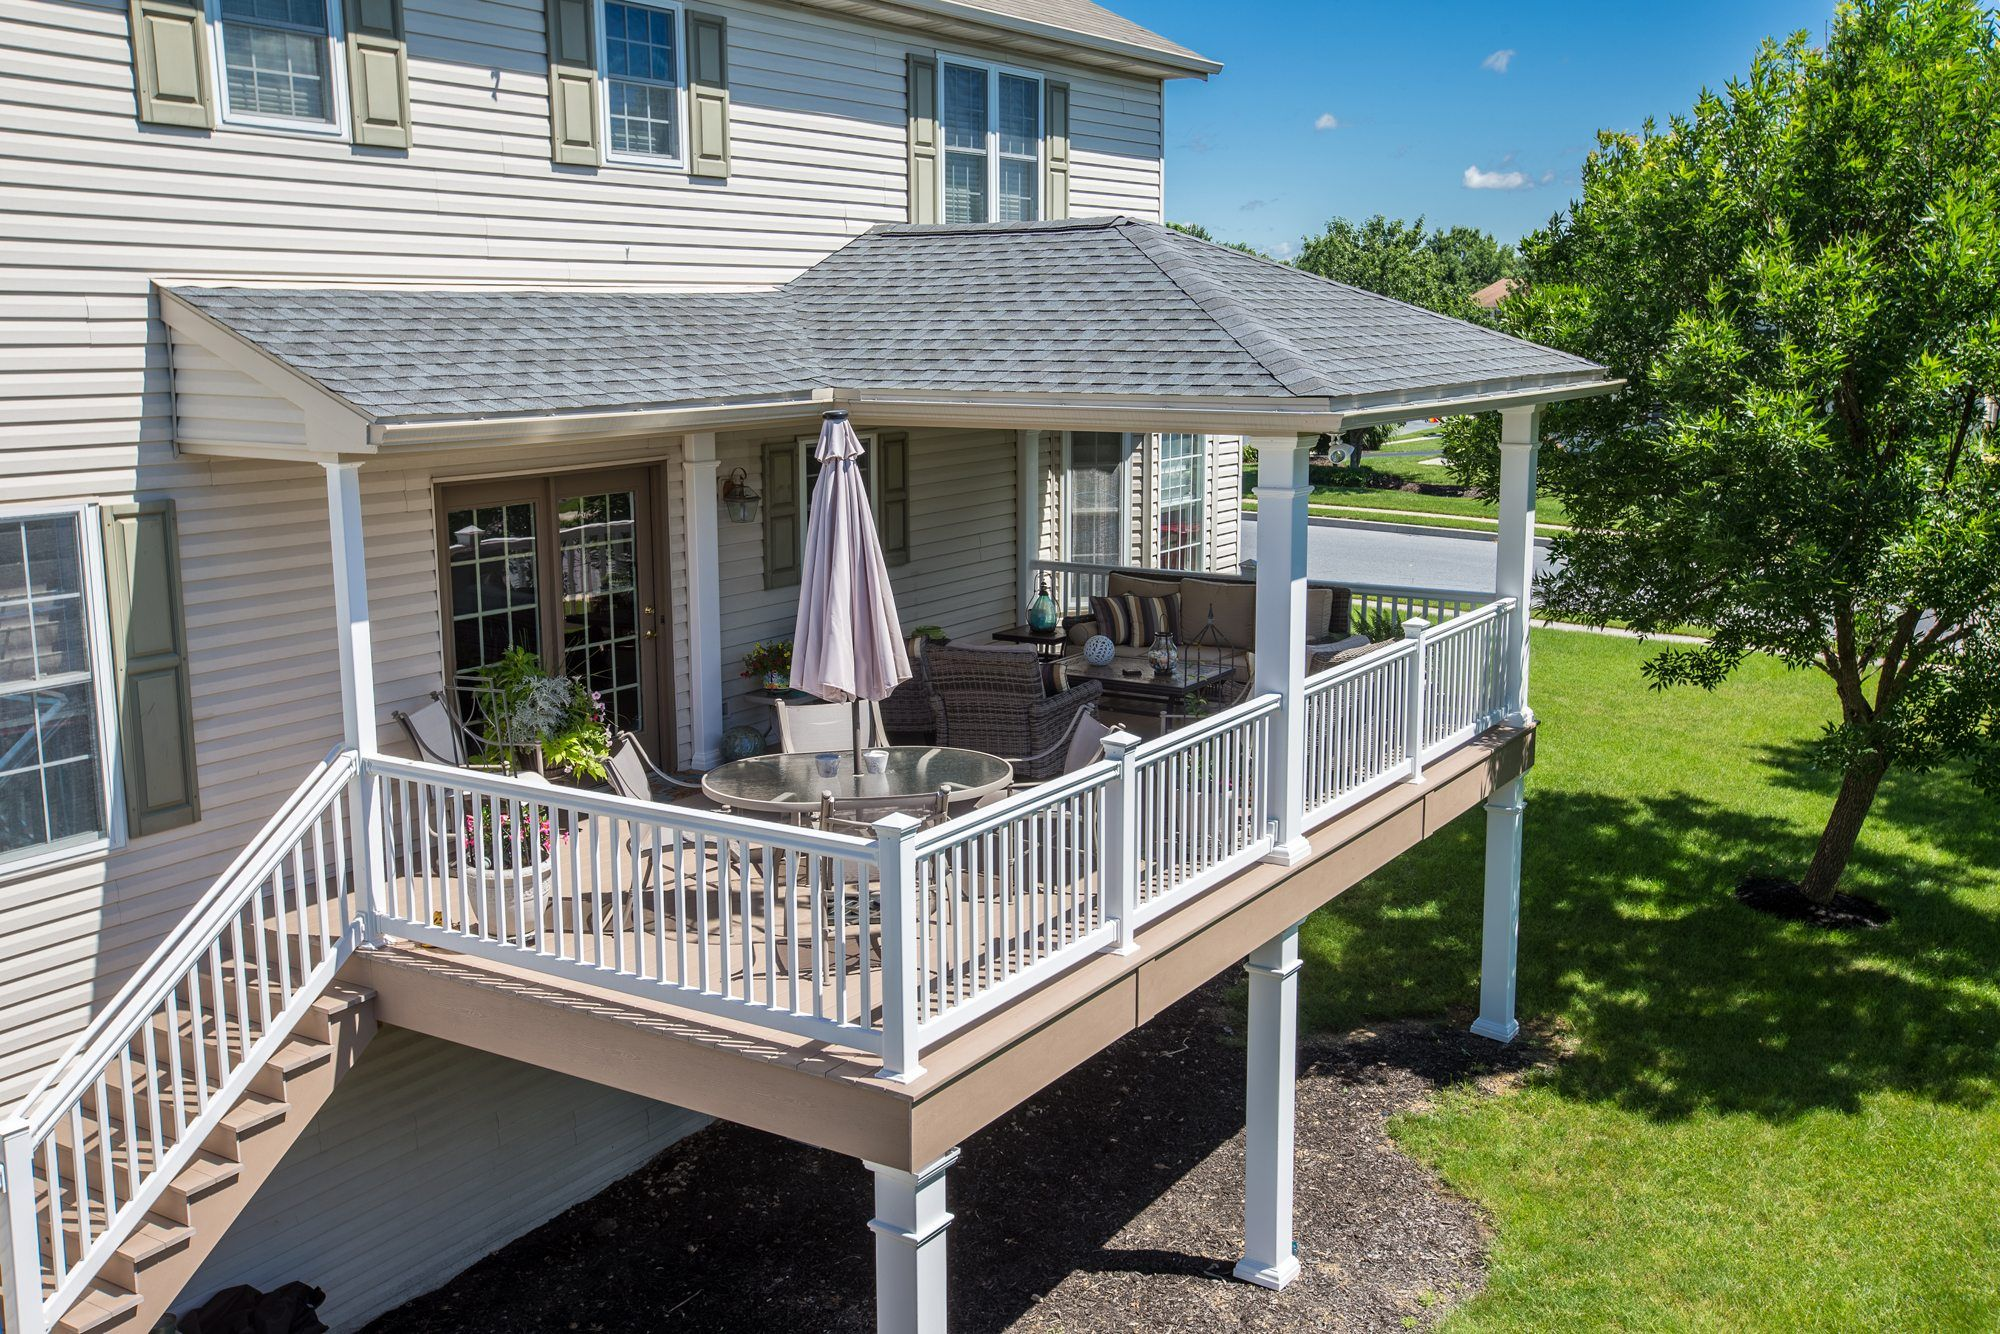 Covered Porch With Hip Style Roof Porch Design Building A Deck Patio Deck Designs